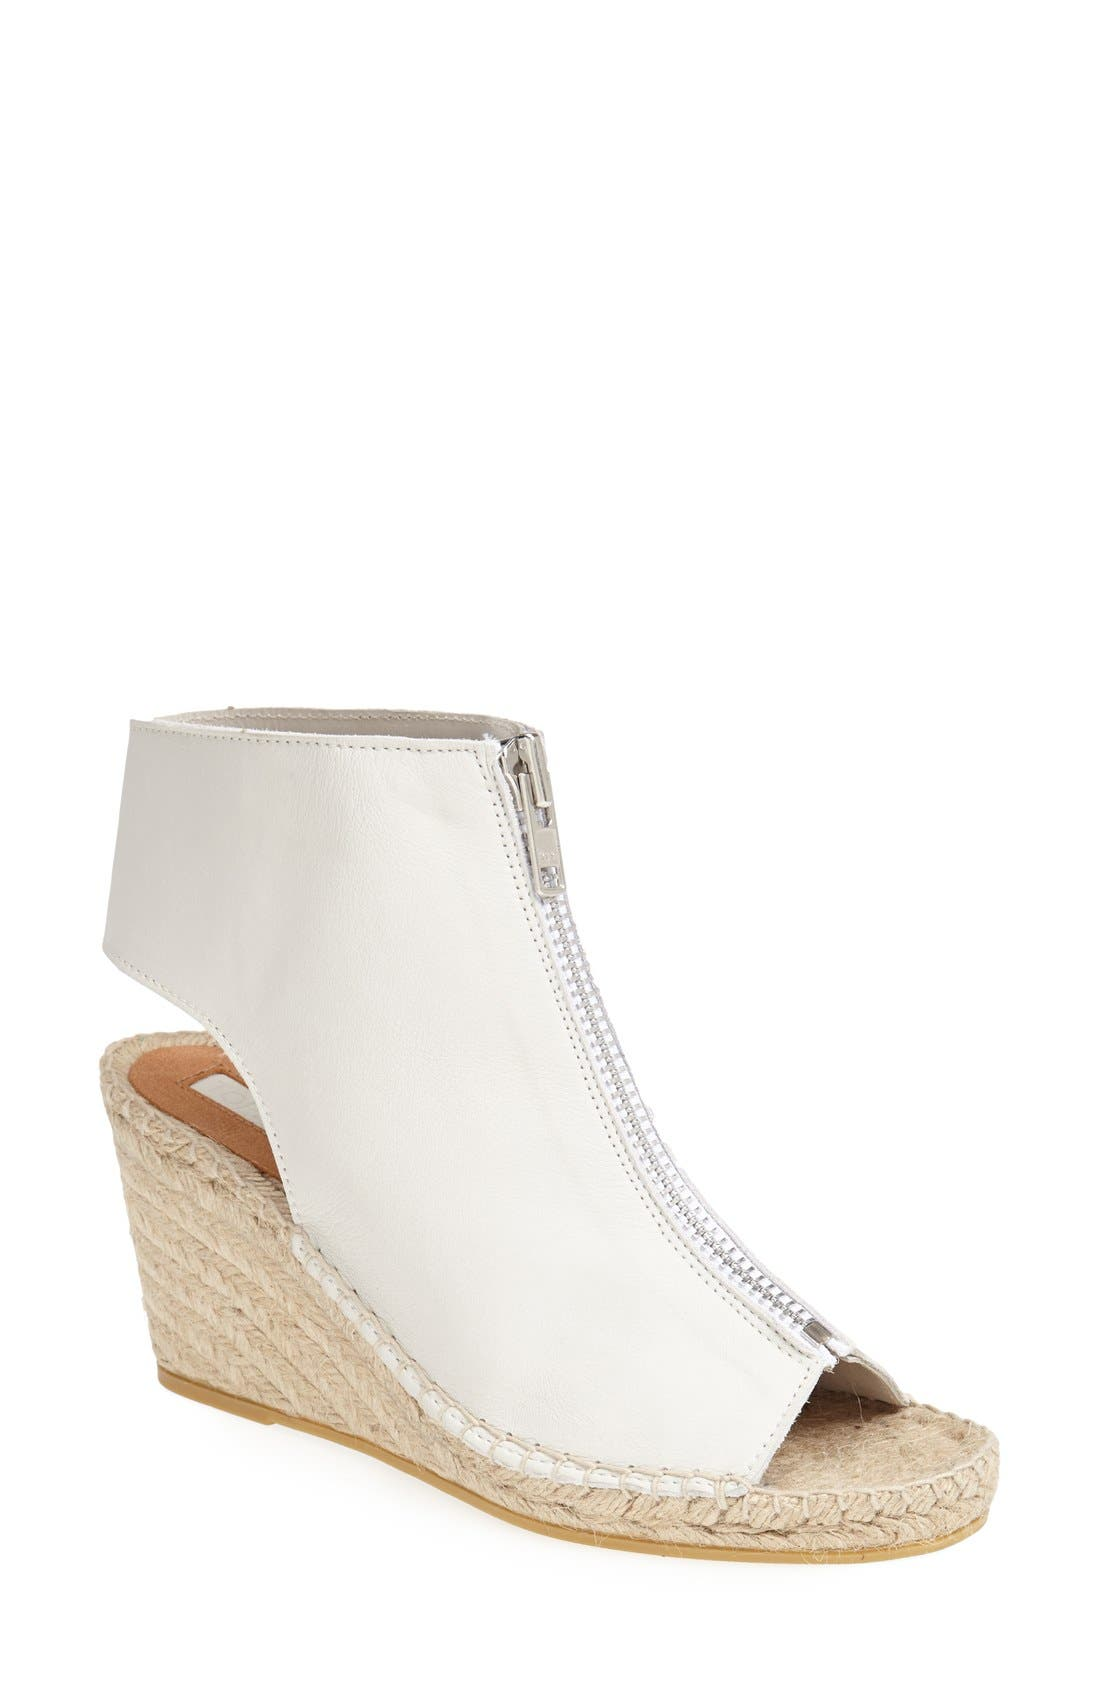 Main Image - Topshop Zip Up Cutout Leather Bootie Wedge